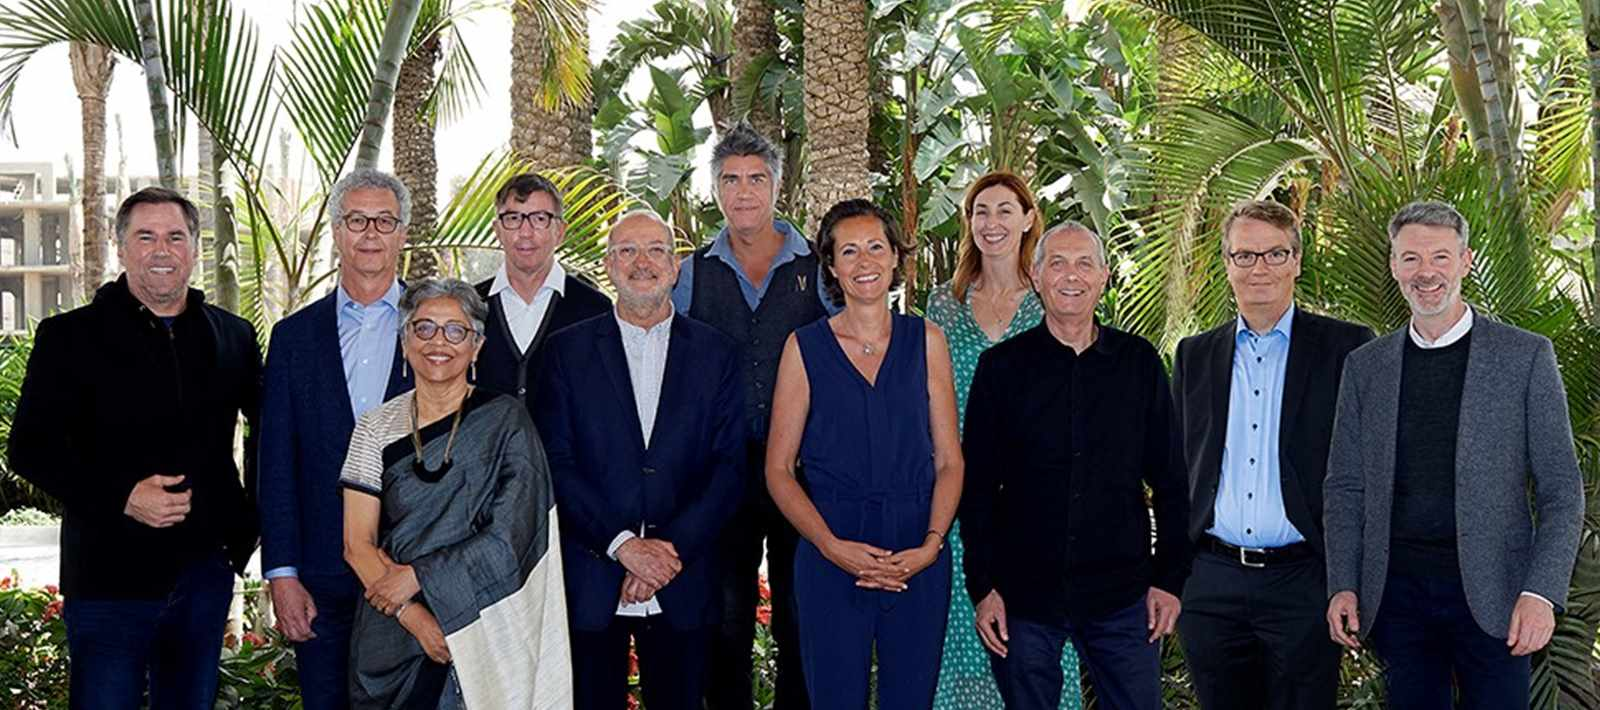 Board of the LafargeHolcim Foundation for Sustainable Construction (l-r): Jan Jenisch, …